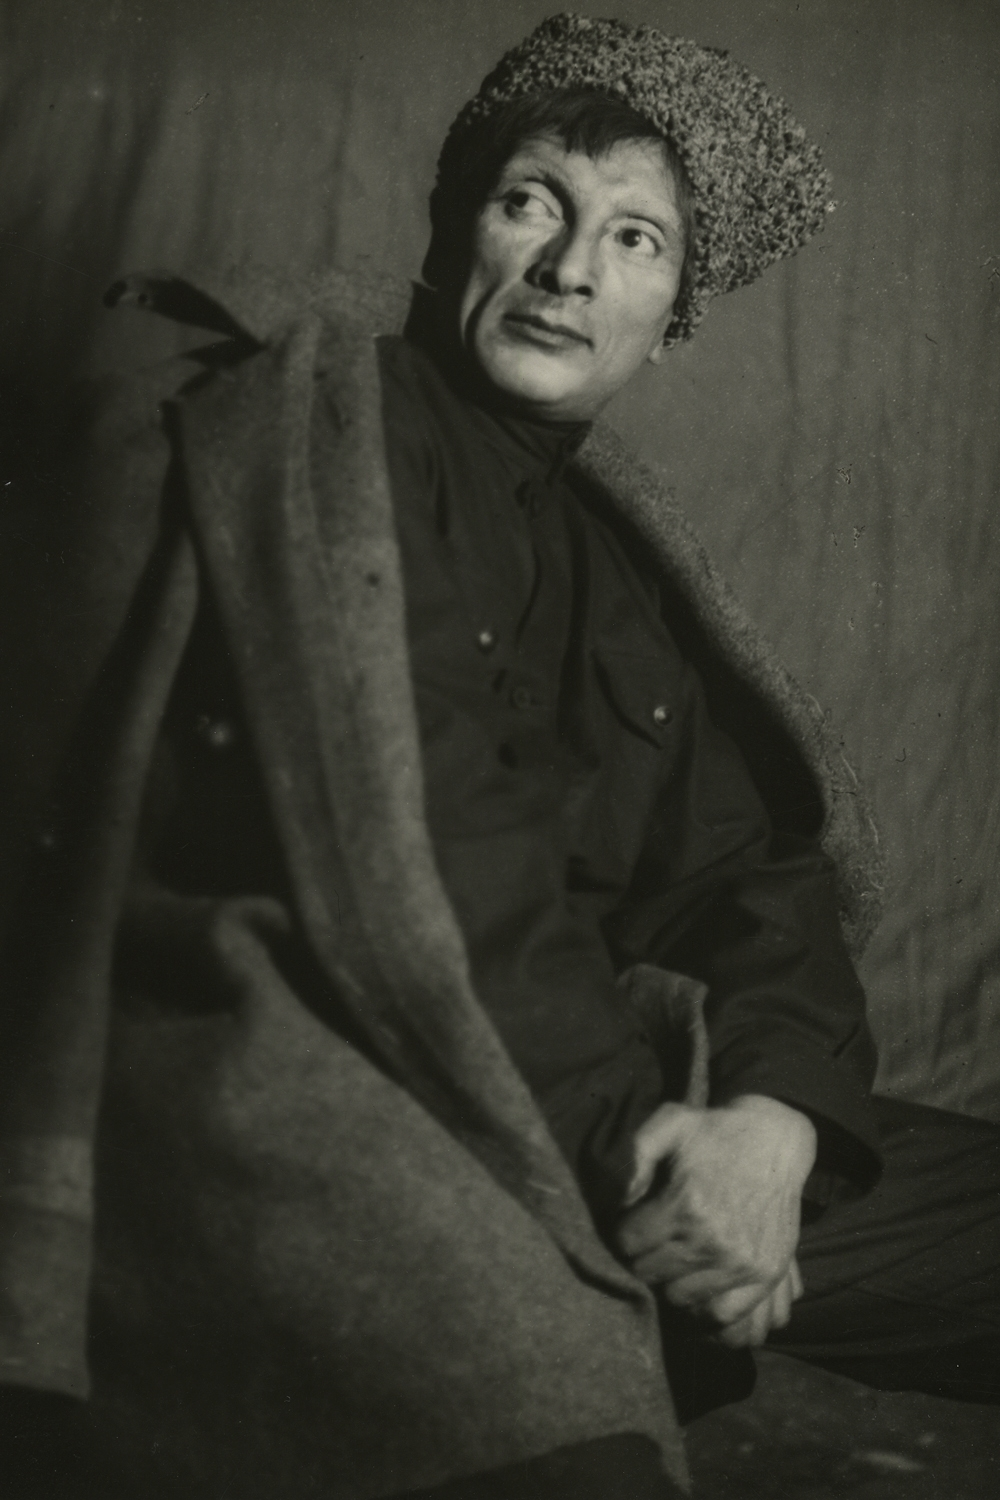 Photograph of Moscow State Yiddish Theatre actor in character.